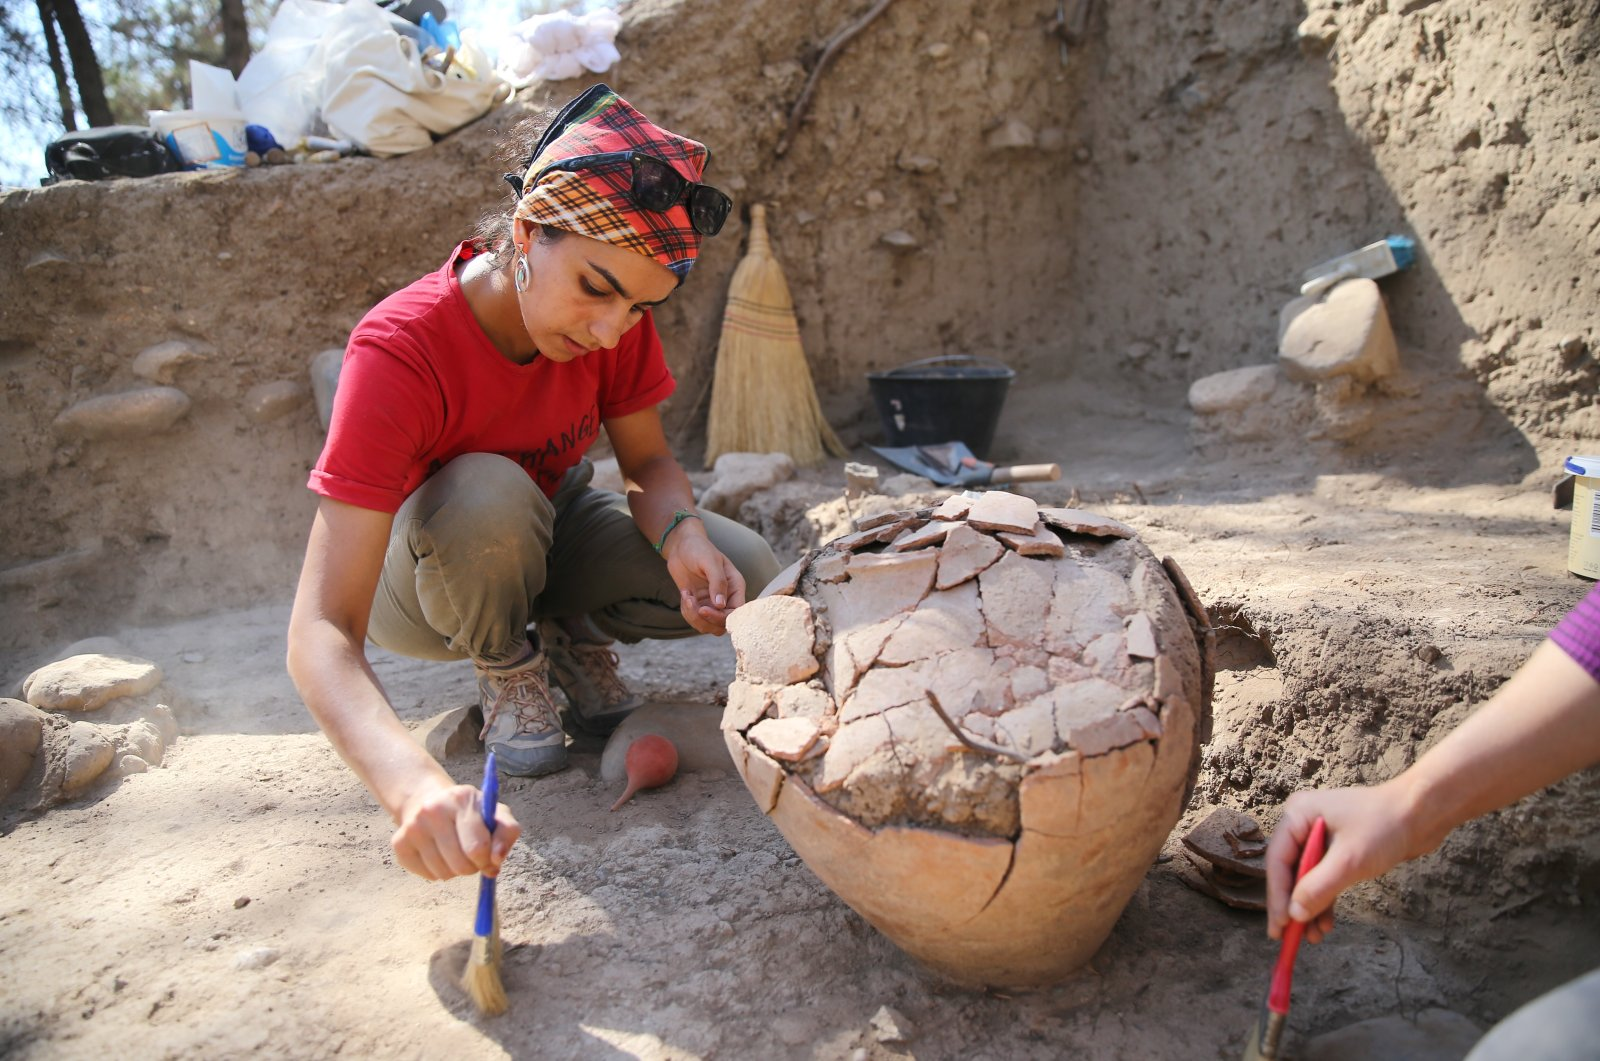 Archaeologists work on the 4,500-year-old jar in the Yumuktepe Mound, Mersin, southern Turkey, Oct. 3, 2021. (AA Photo)